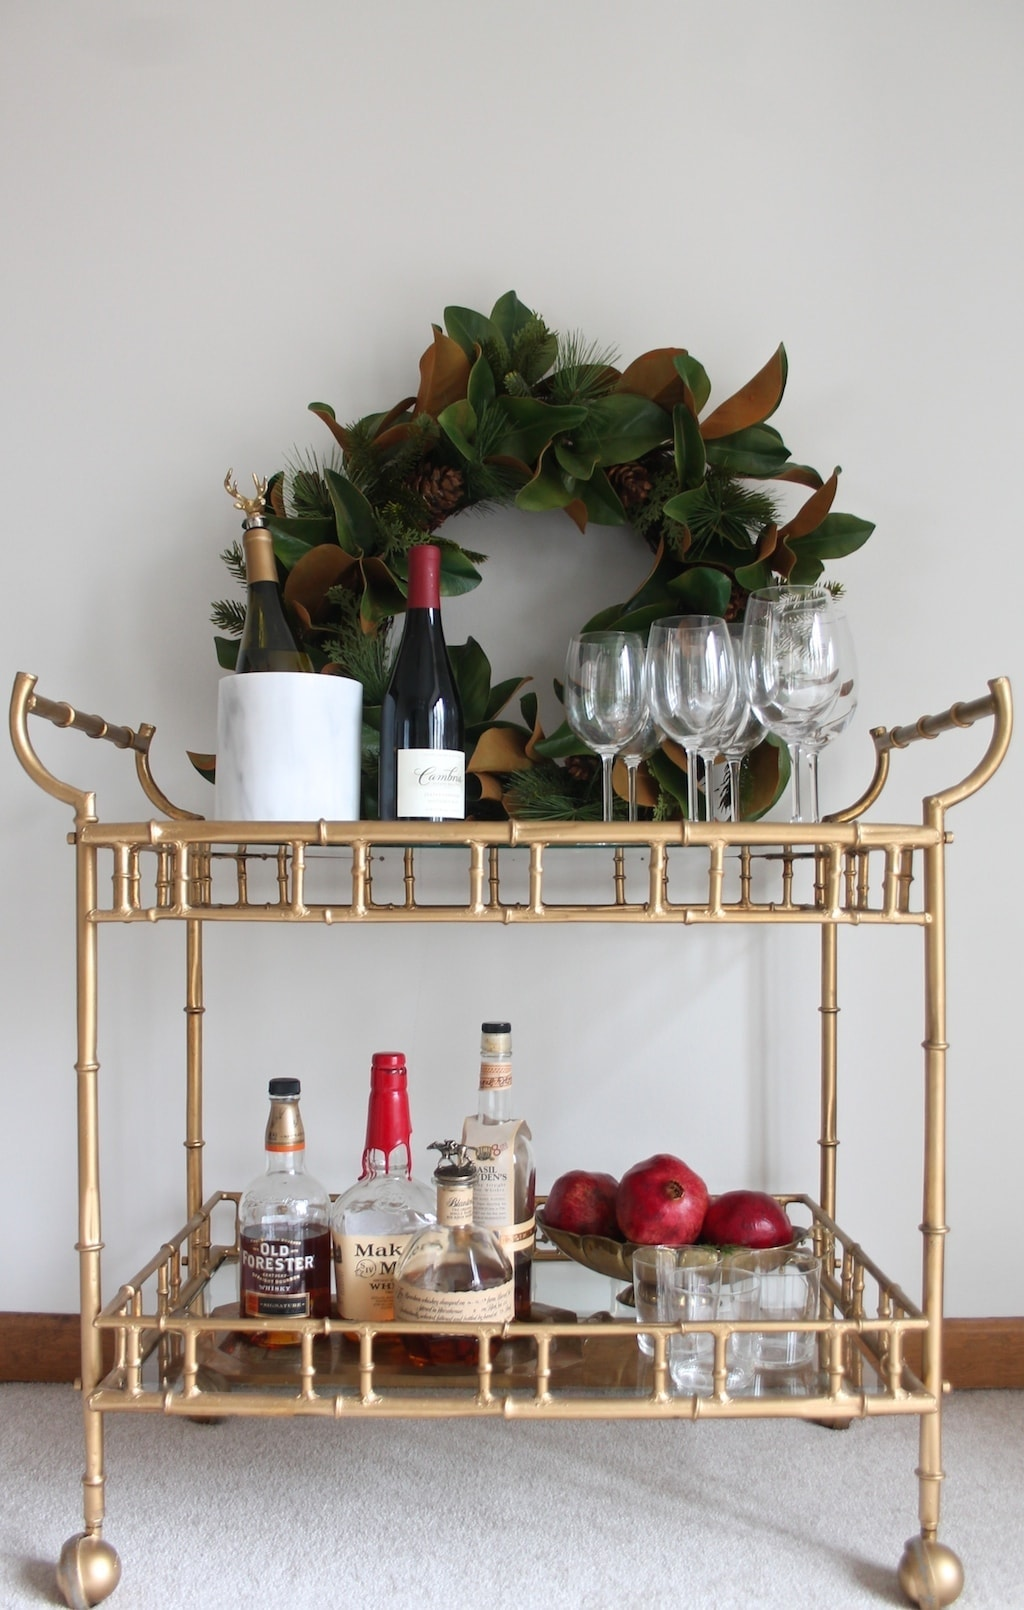 How to set up a bar cart - for Christmas entertaining!